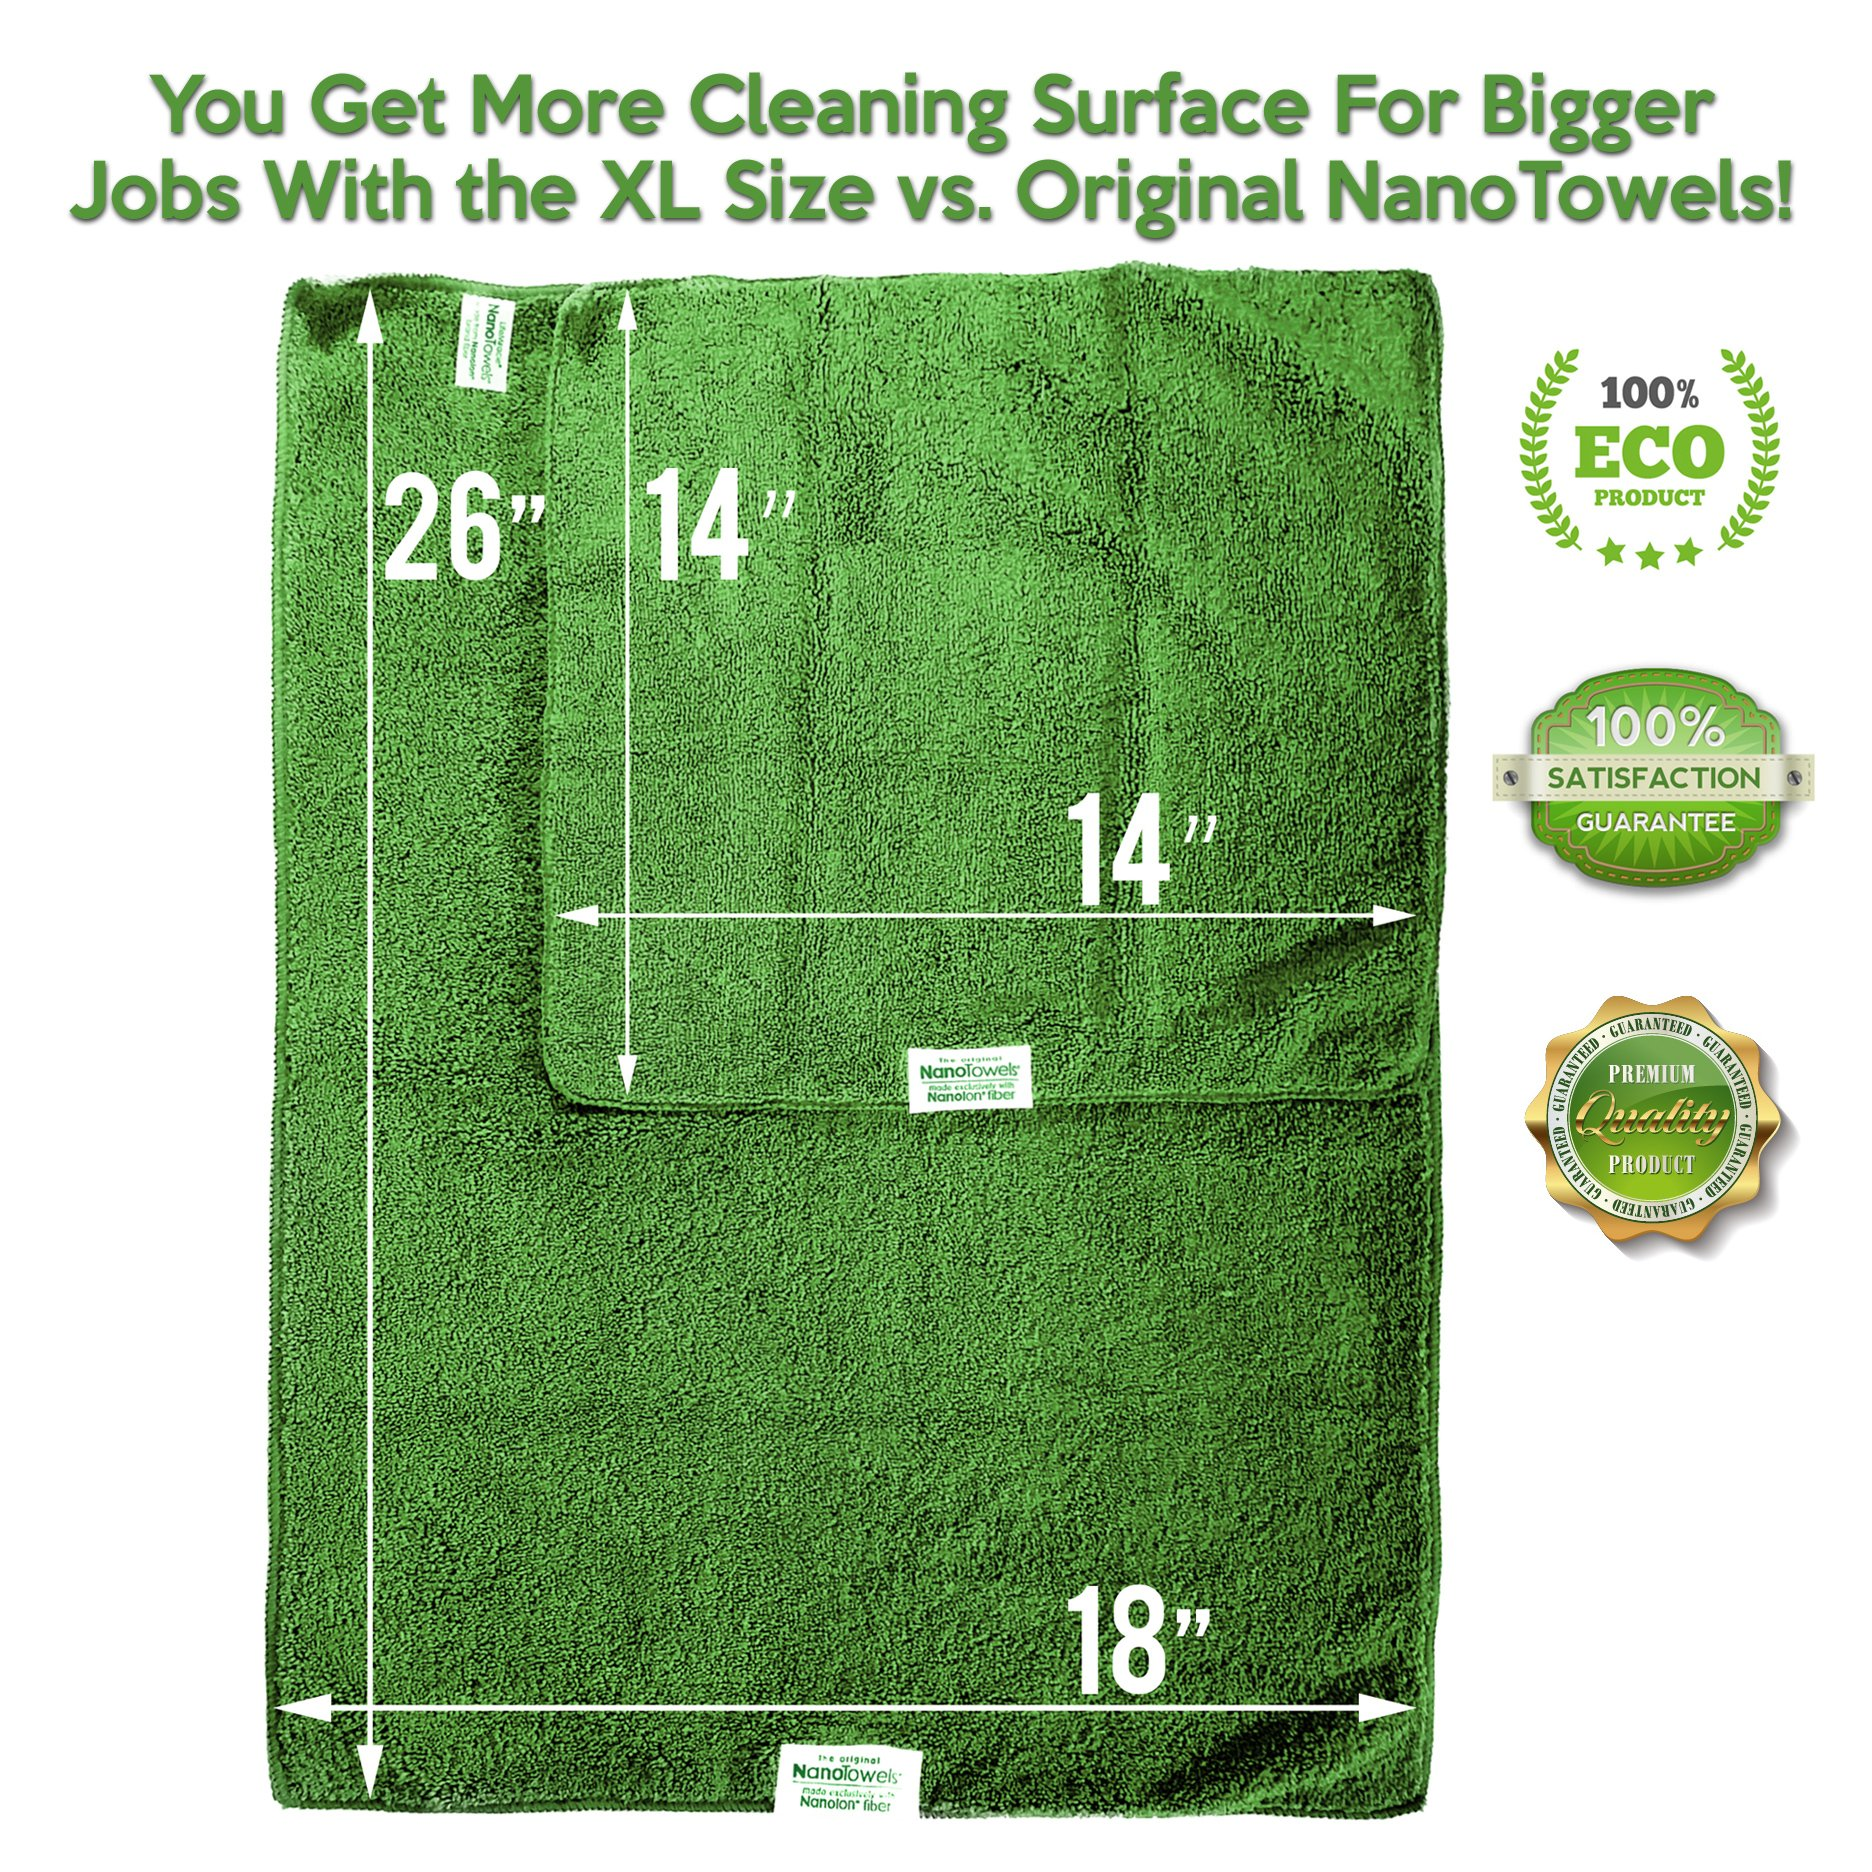 Life Miracle Nano Towels SUPERSIZED The Breakthrough Fabric That Replaces Paper Towels and Toxic Chemical Cleaners. Use As Bath Towels, Kitchen Towels, etc. All Purpose Cleaning Wipes 26x18 by Life Miracle (Image #4)